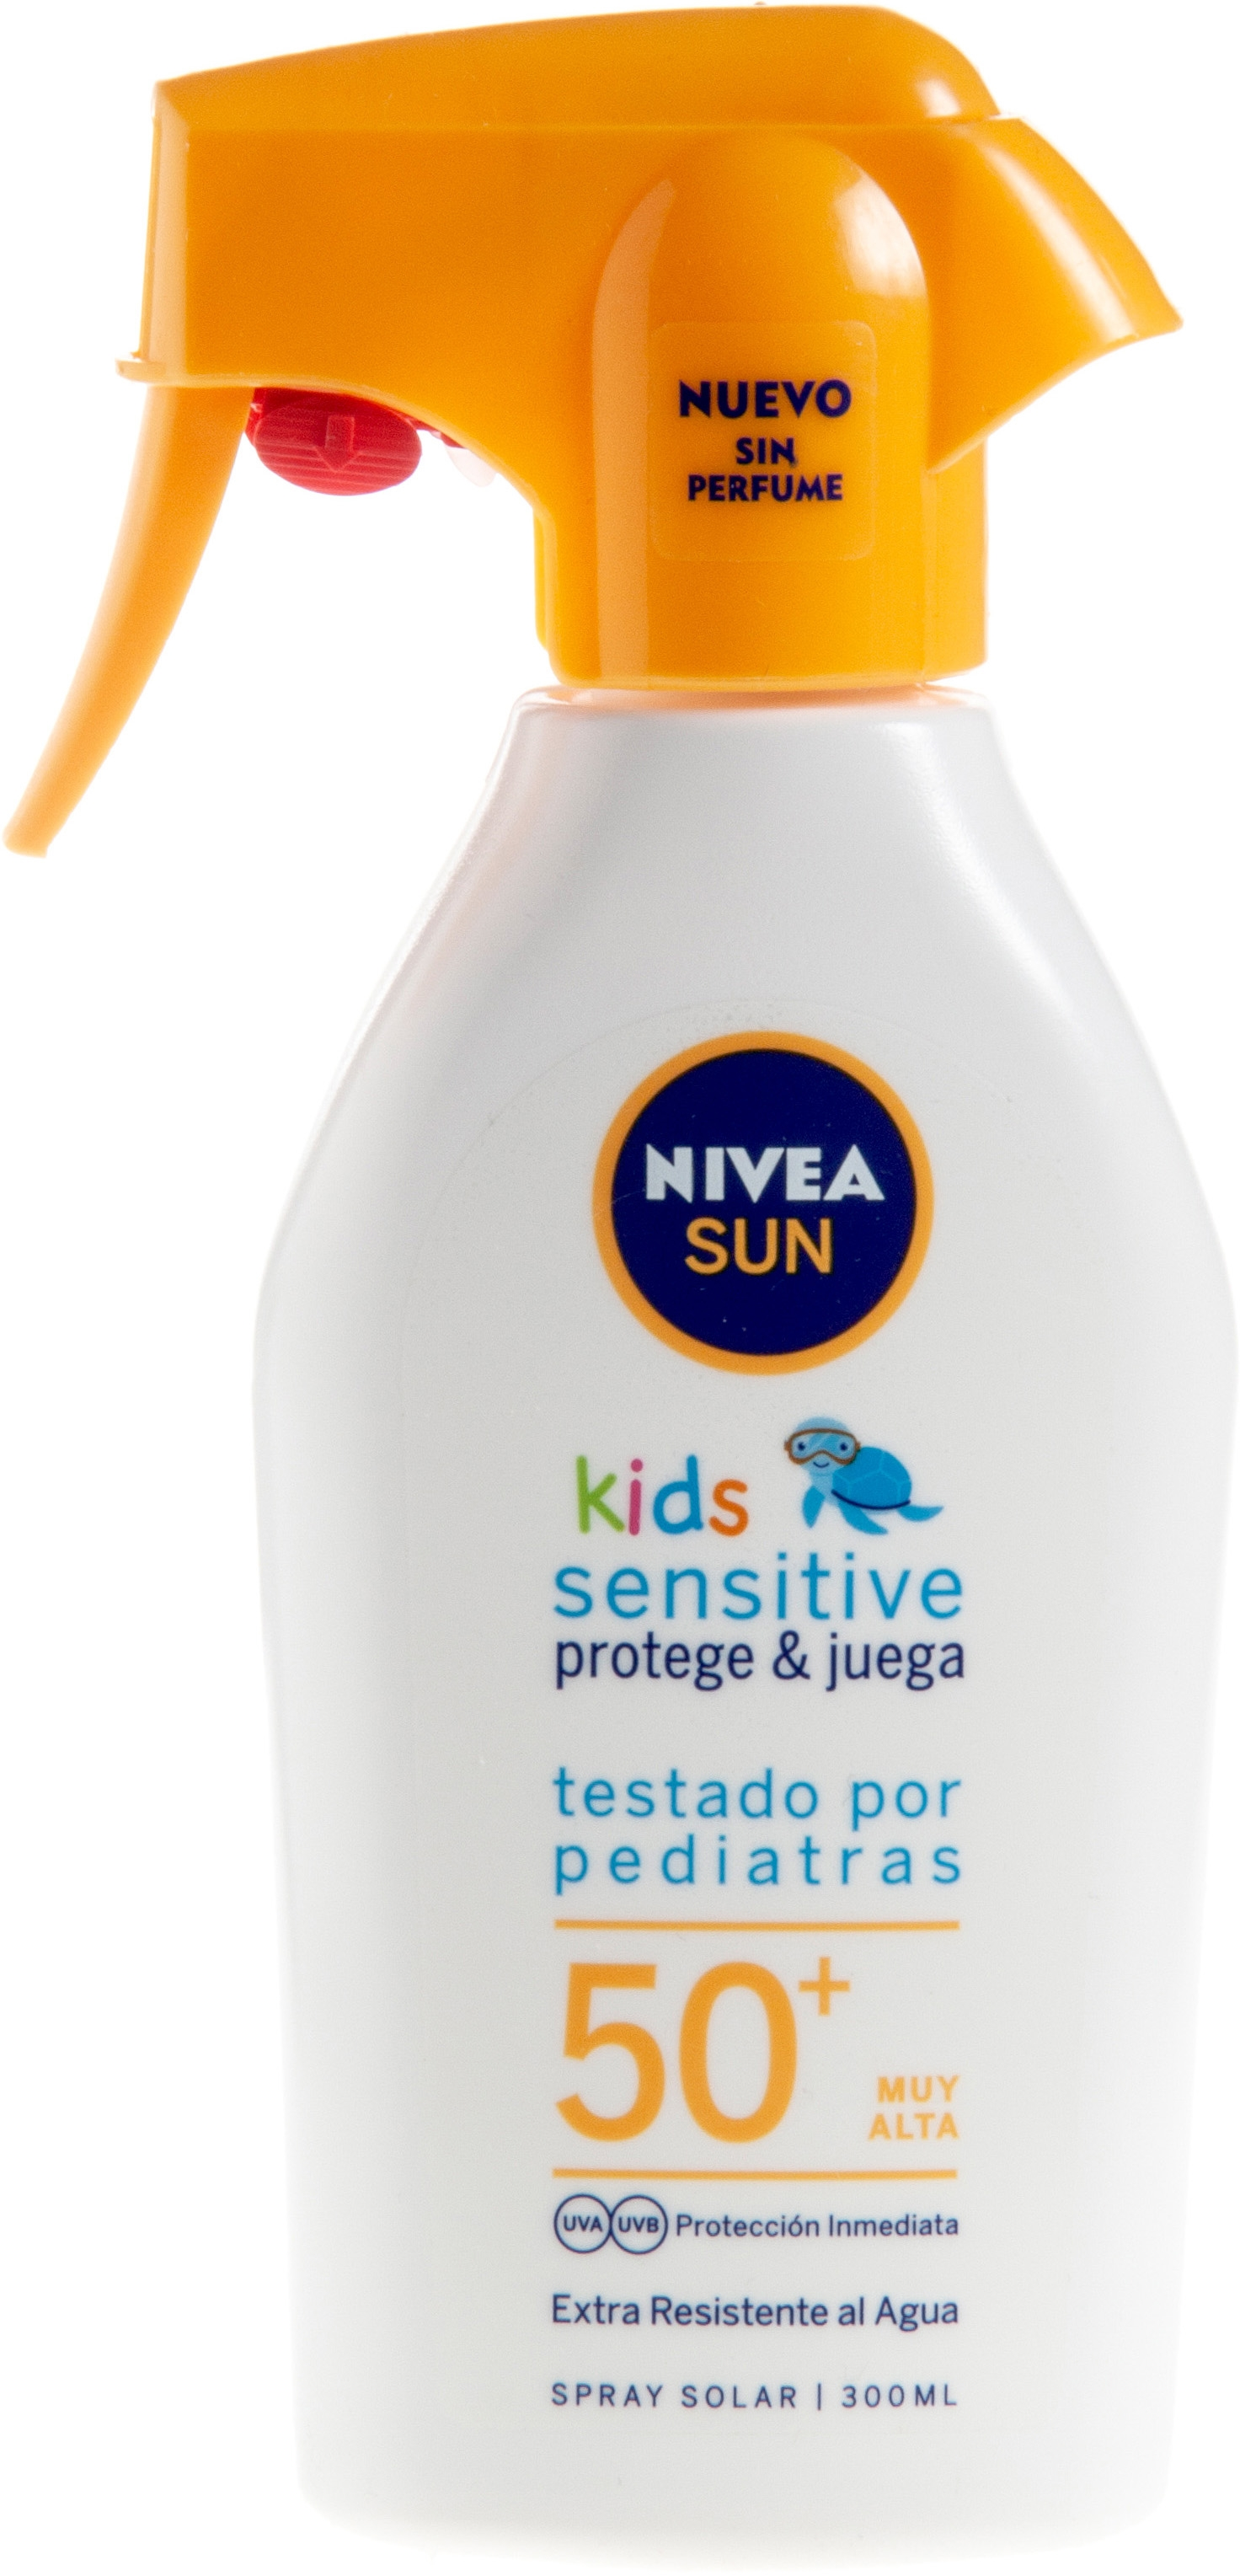 Sensitive Protege & Juega Spray Solar SPF 50+